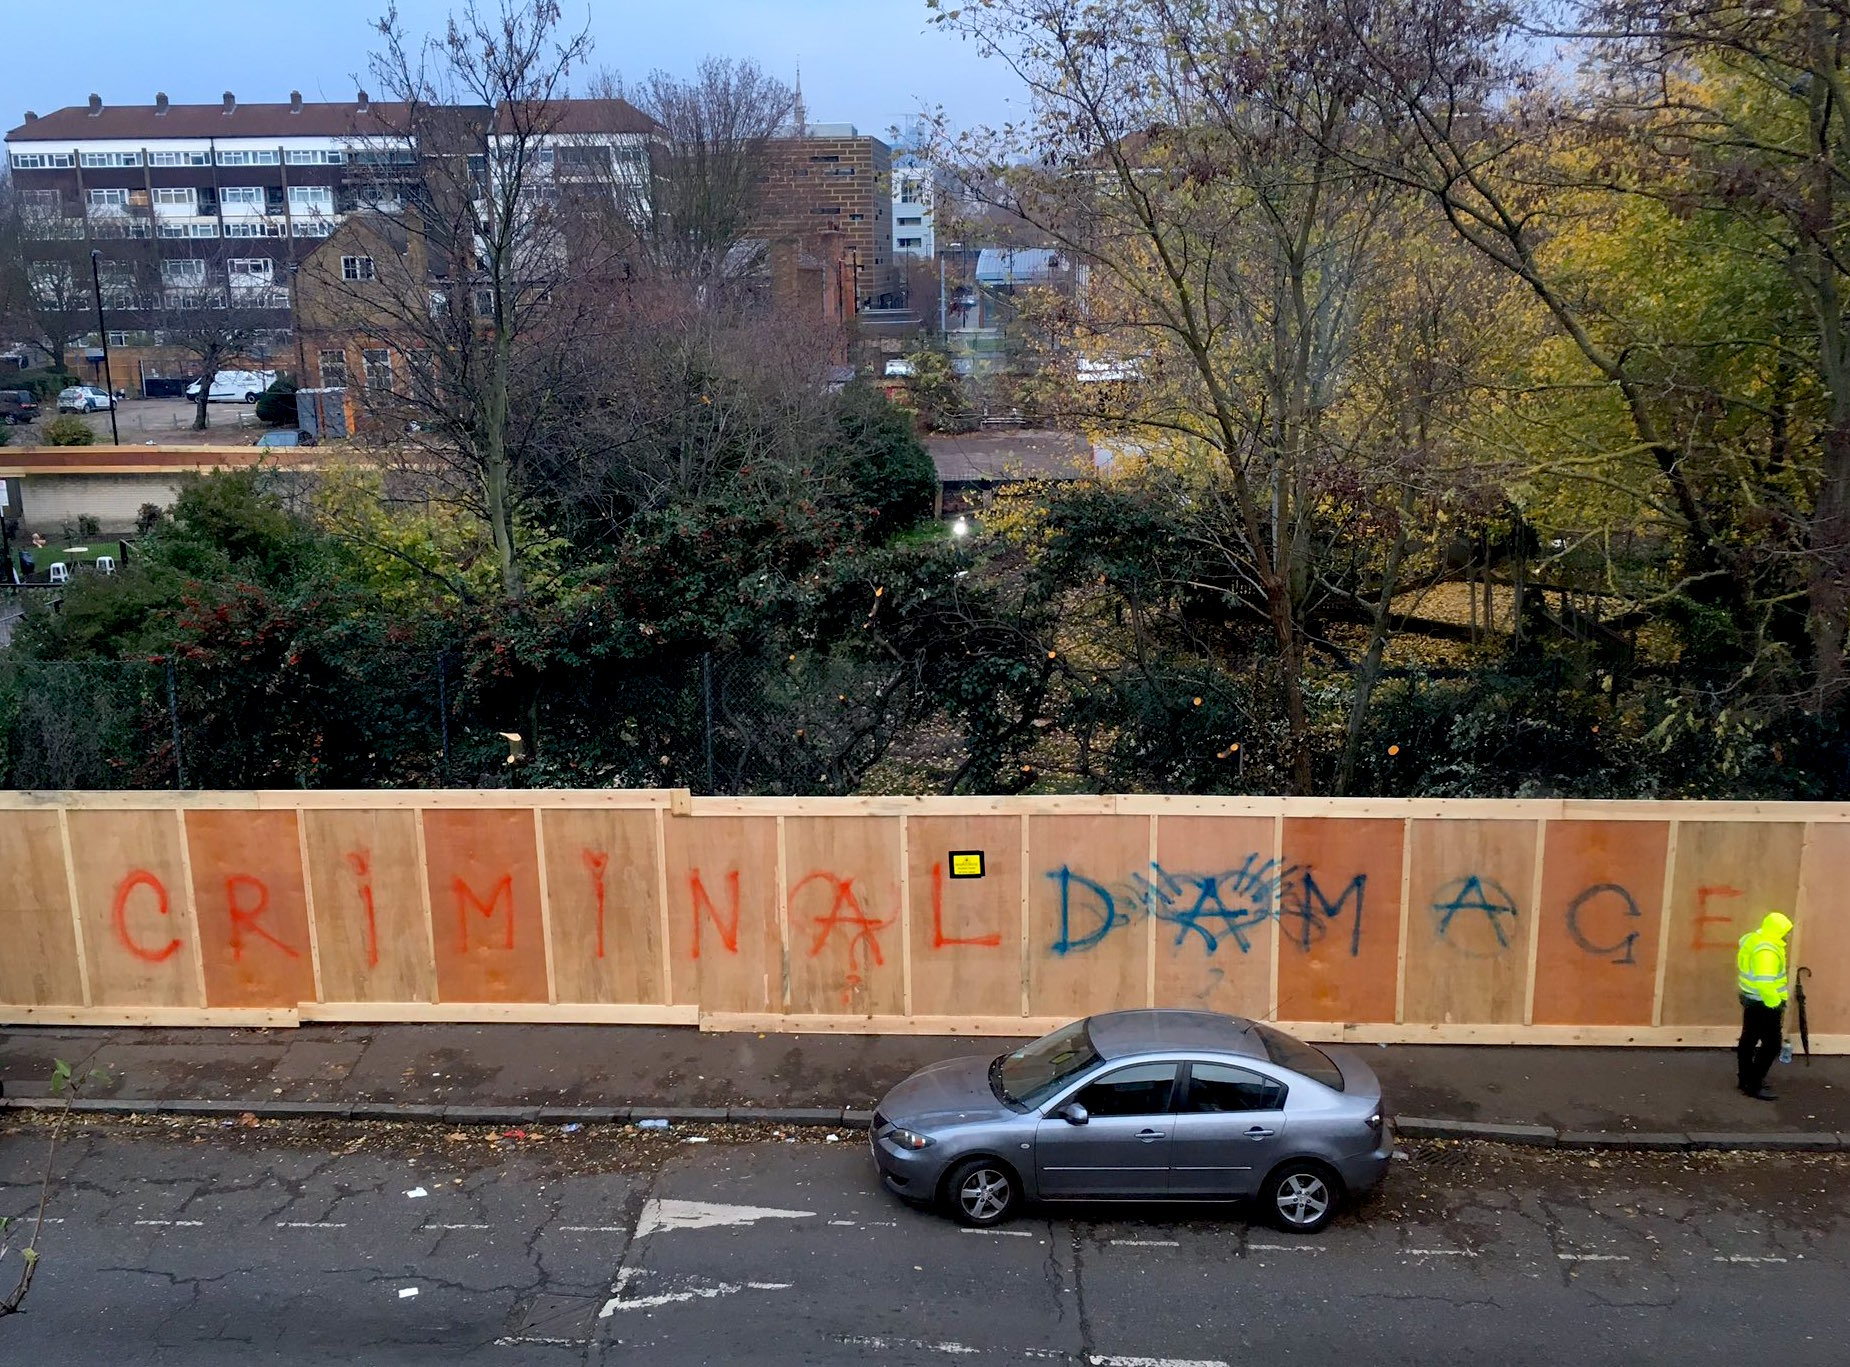 'Criminal damage': graffiti on the hoarding erected around the Old Tidemill Wildlife Garden in Deptford after its violent eviction on October 29, 2018 (Photo: Ruby Radburn).